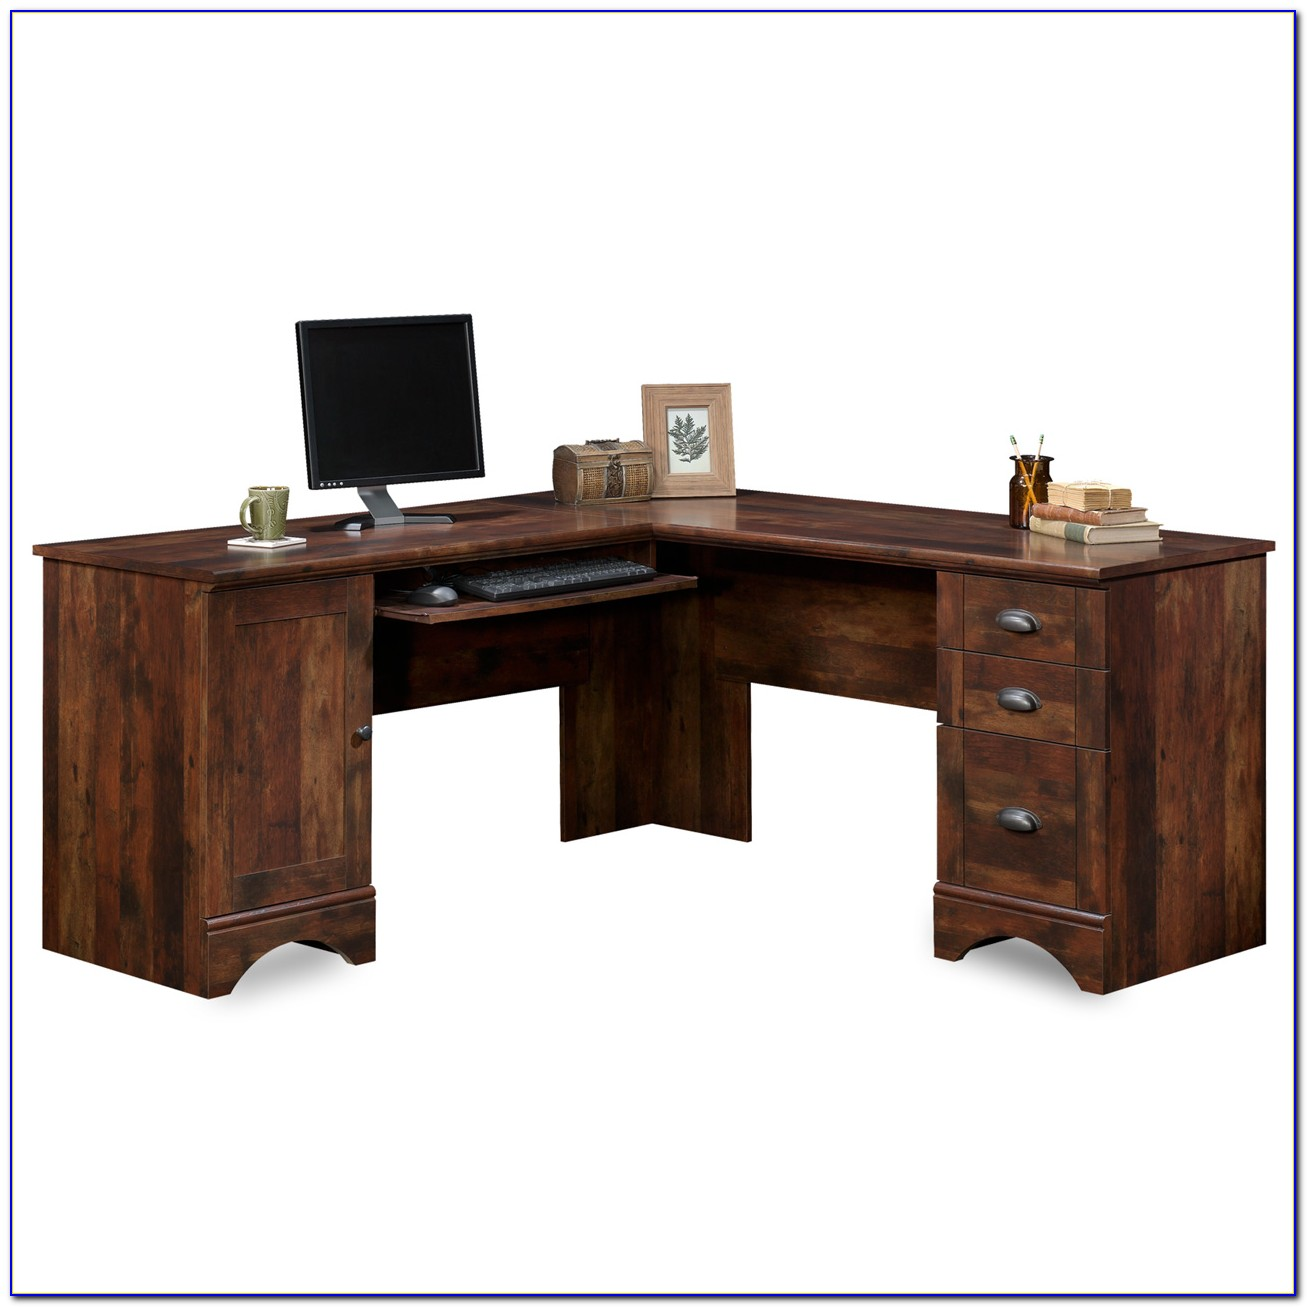 Sauder Harbor View Corner Computer Desk Antiqued Paint